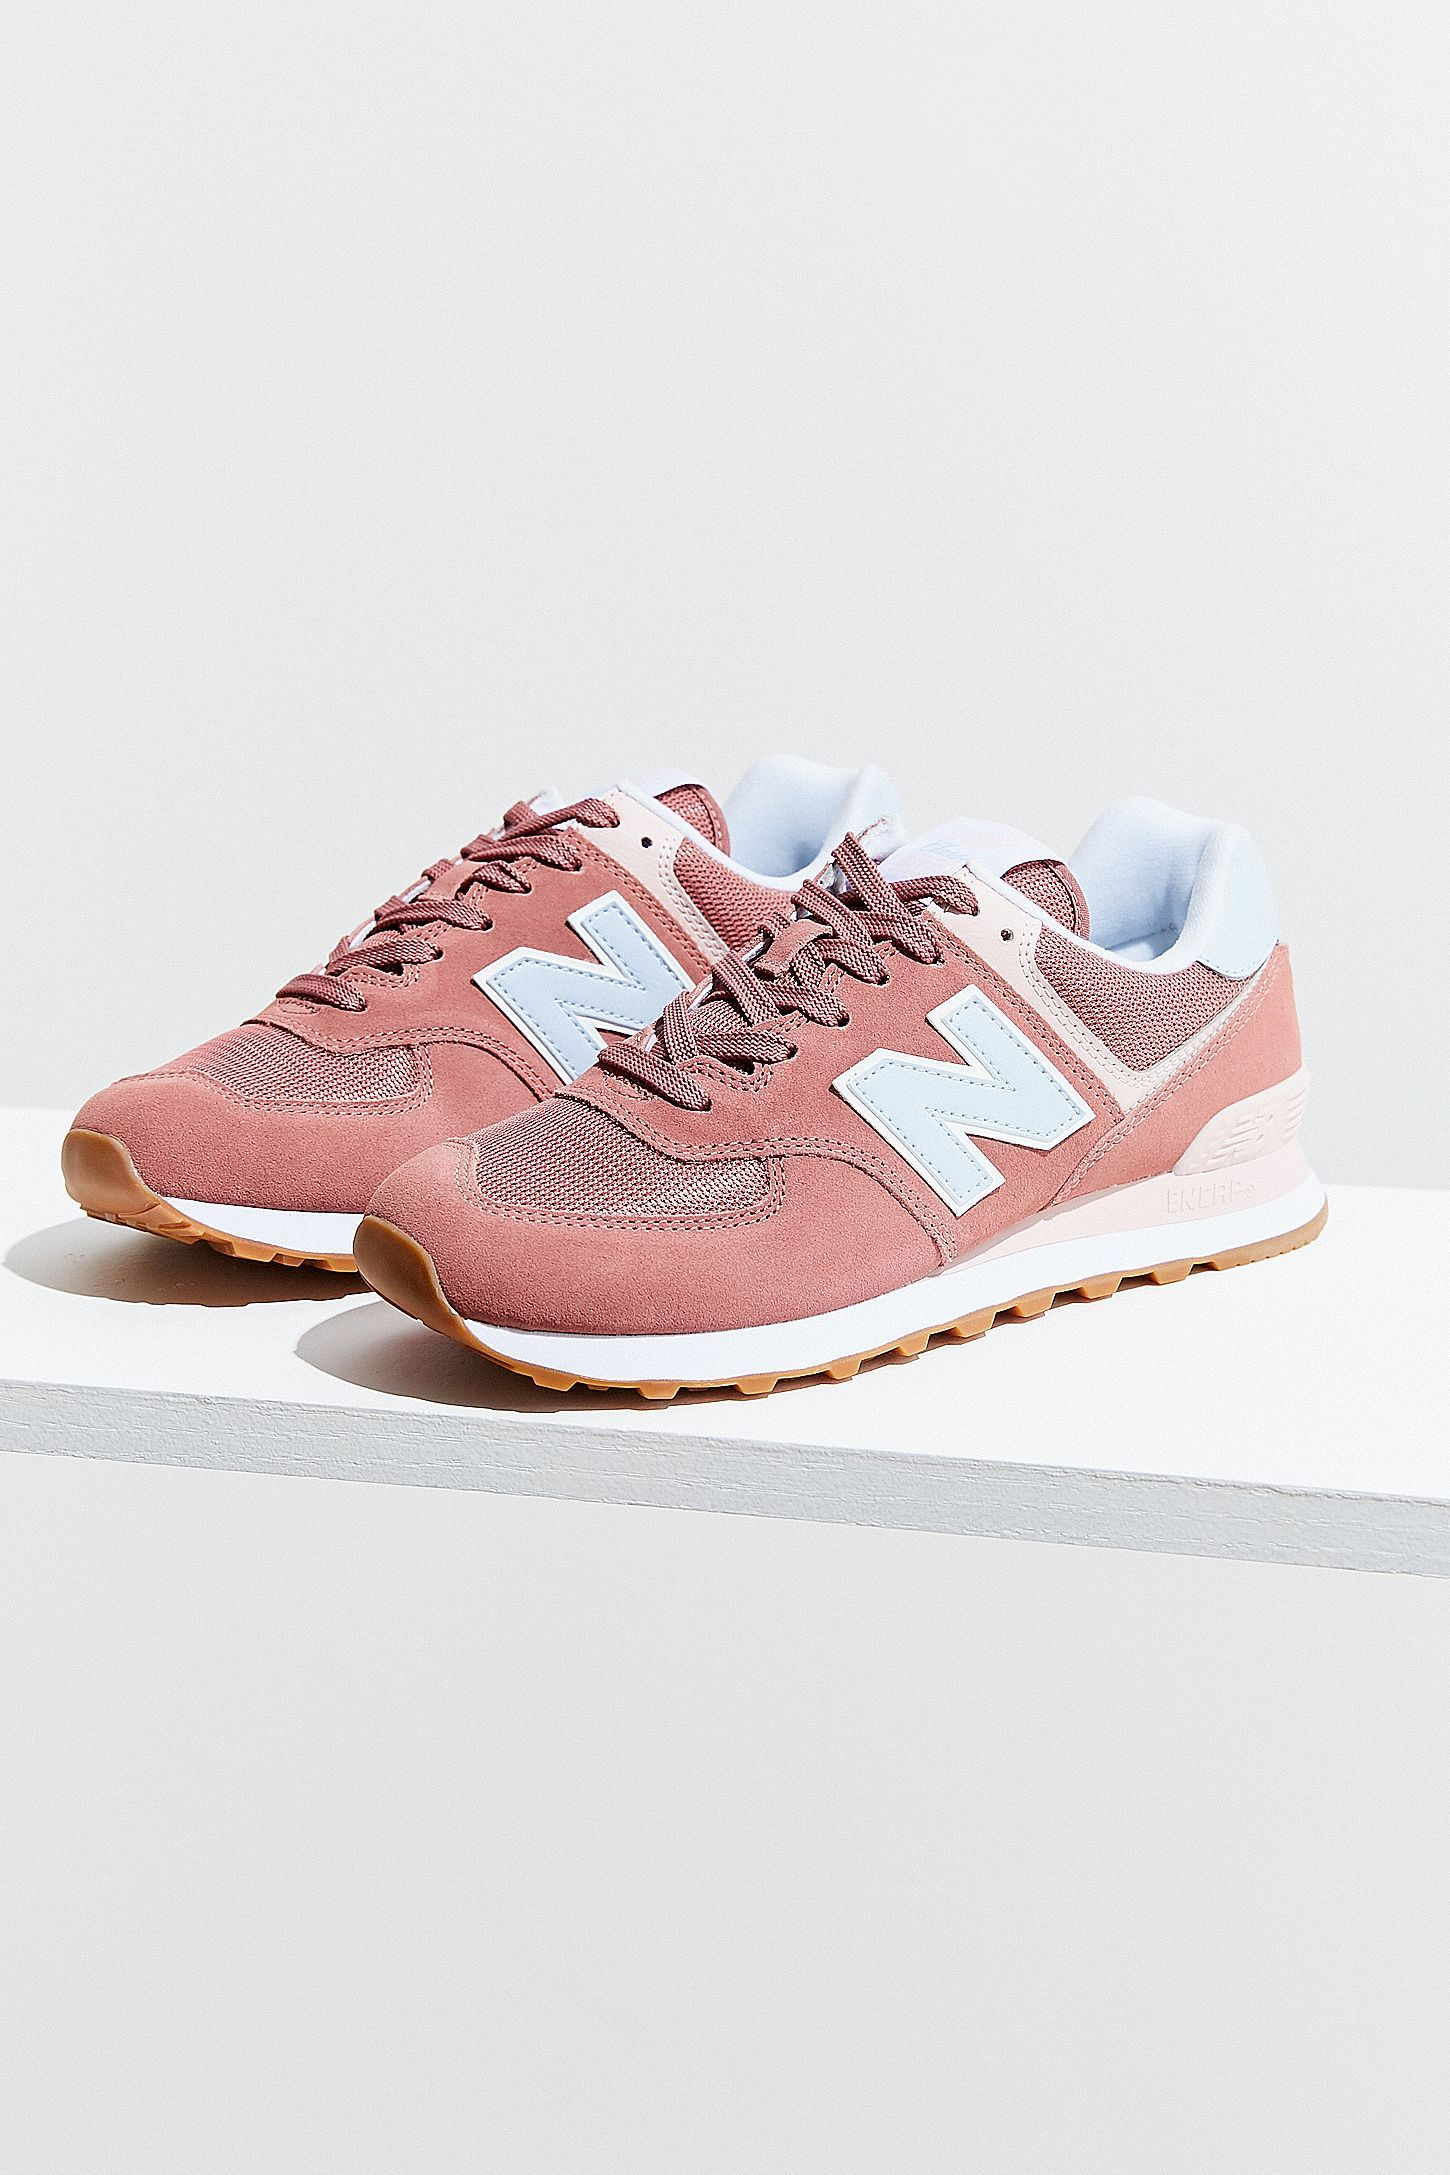 detailed look 100% top quality new arrival New Balance 574 Summer Dusk Sneaker | Sneakers, New balance 574 ...